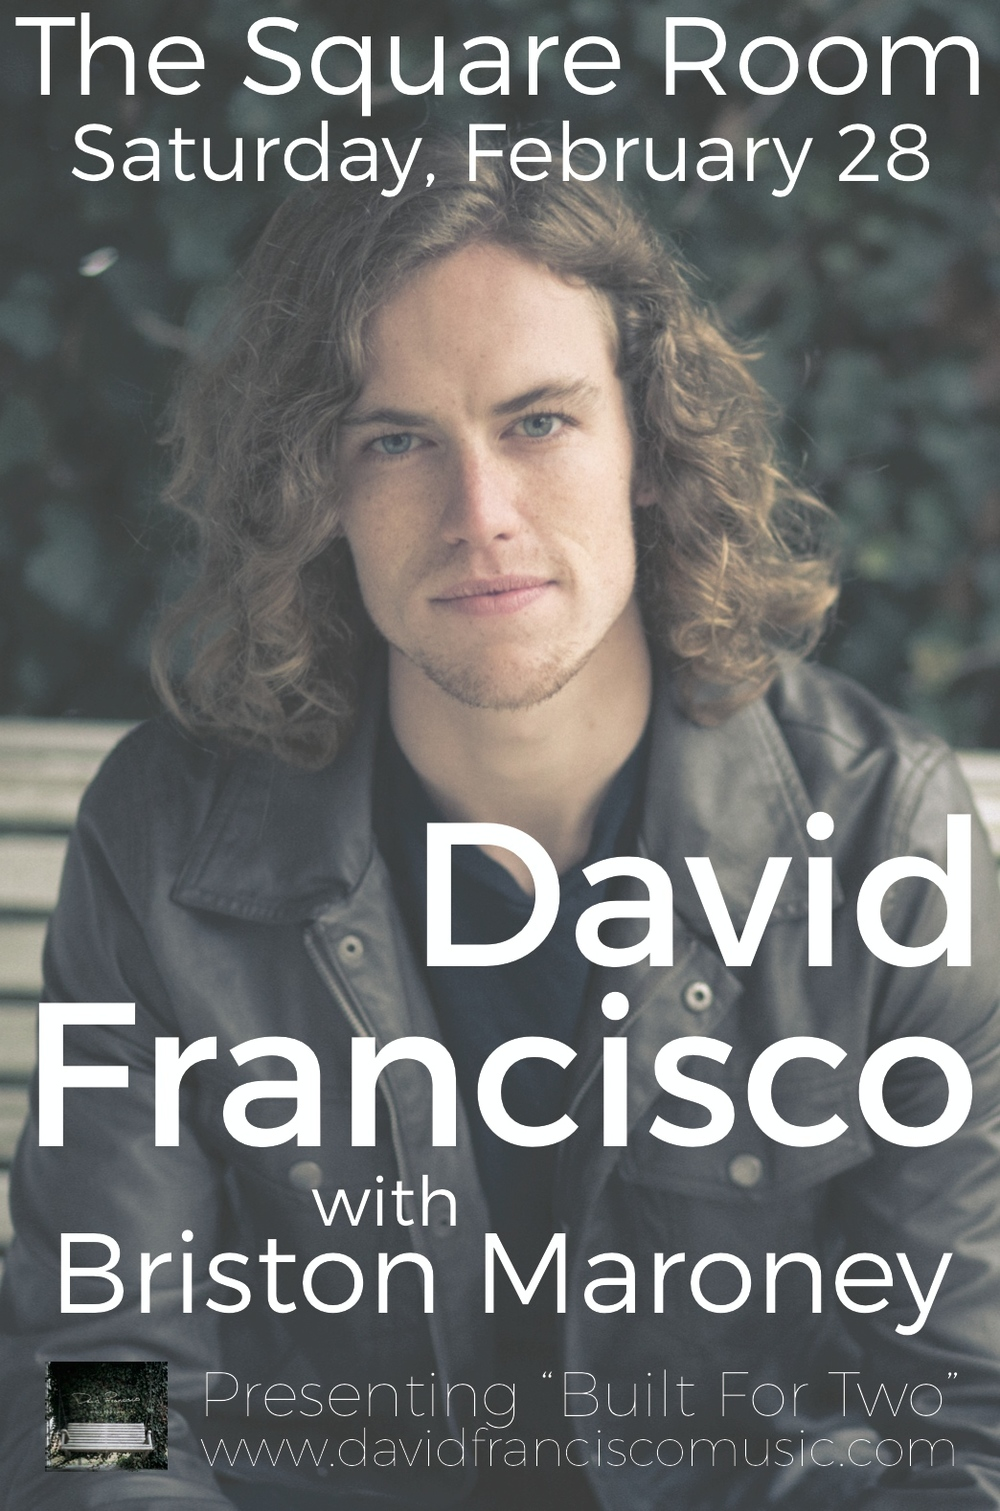 David Francisco Publicity Flyer